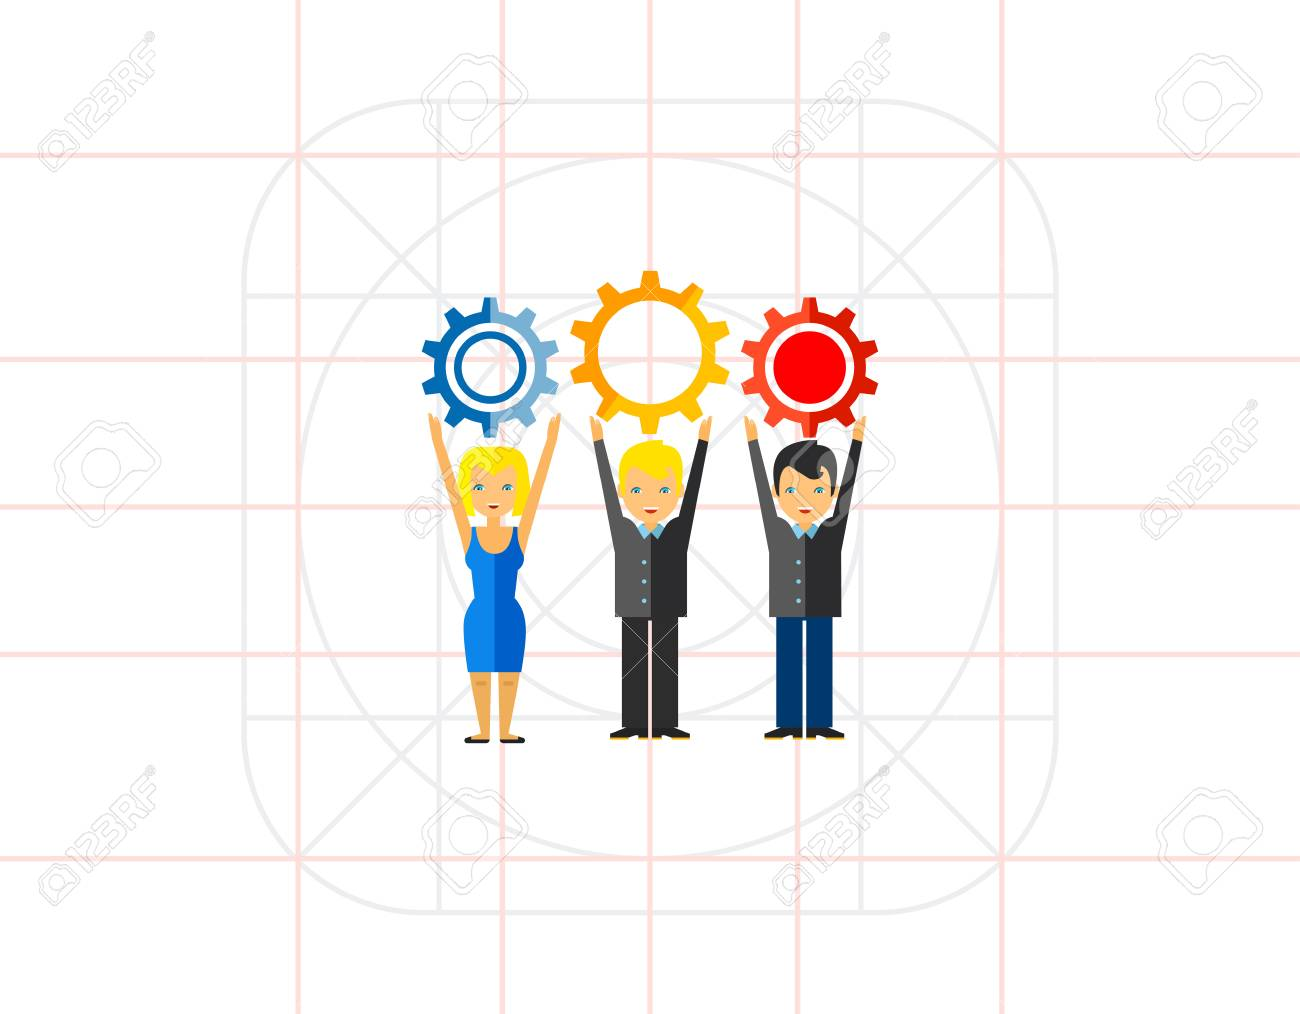 Multicolored vector icon of three people holding gears representing workforce concept - 70587894